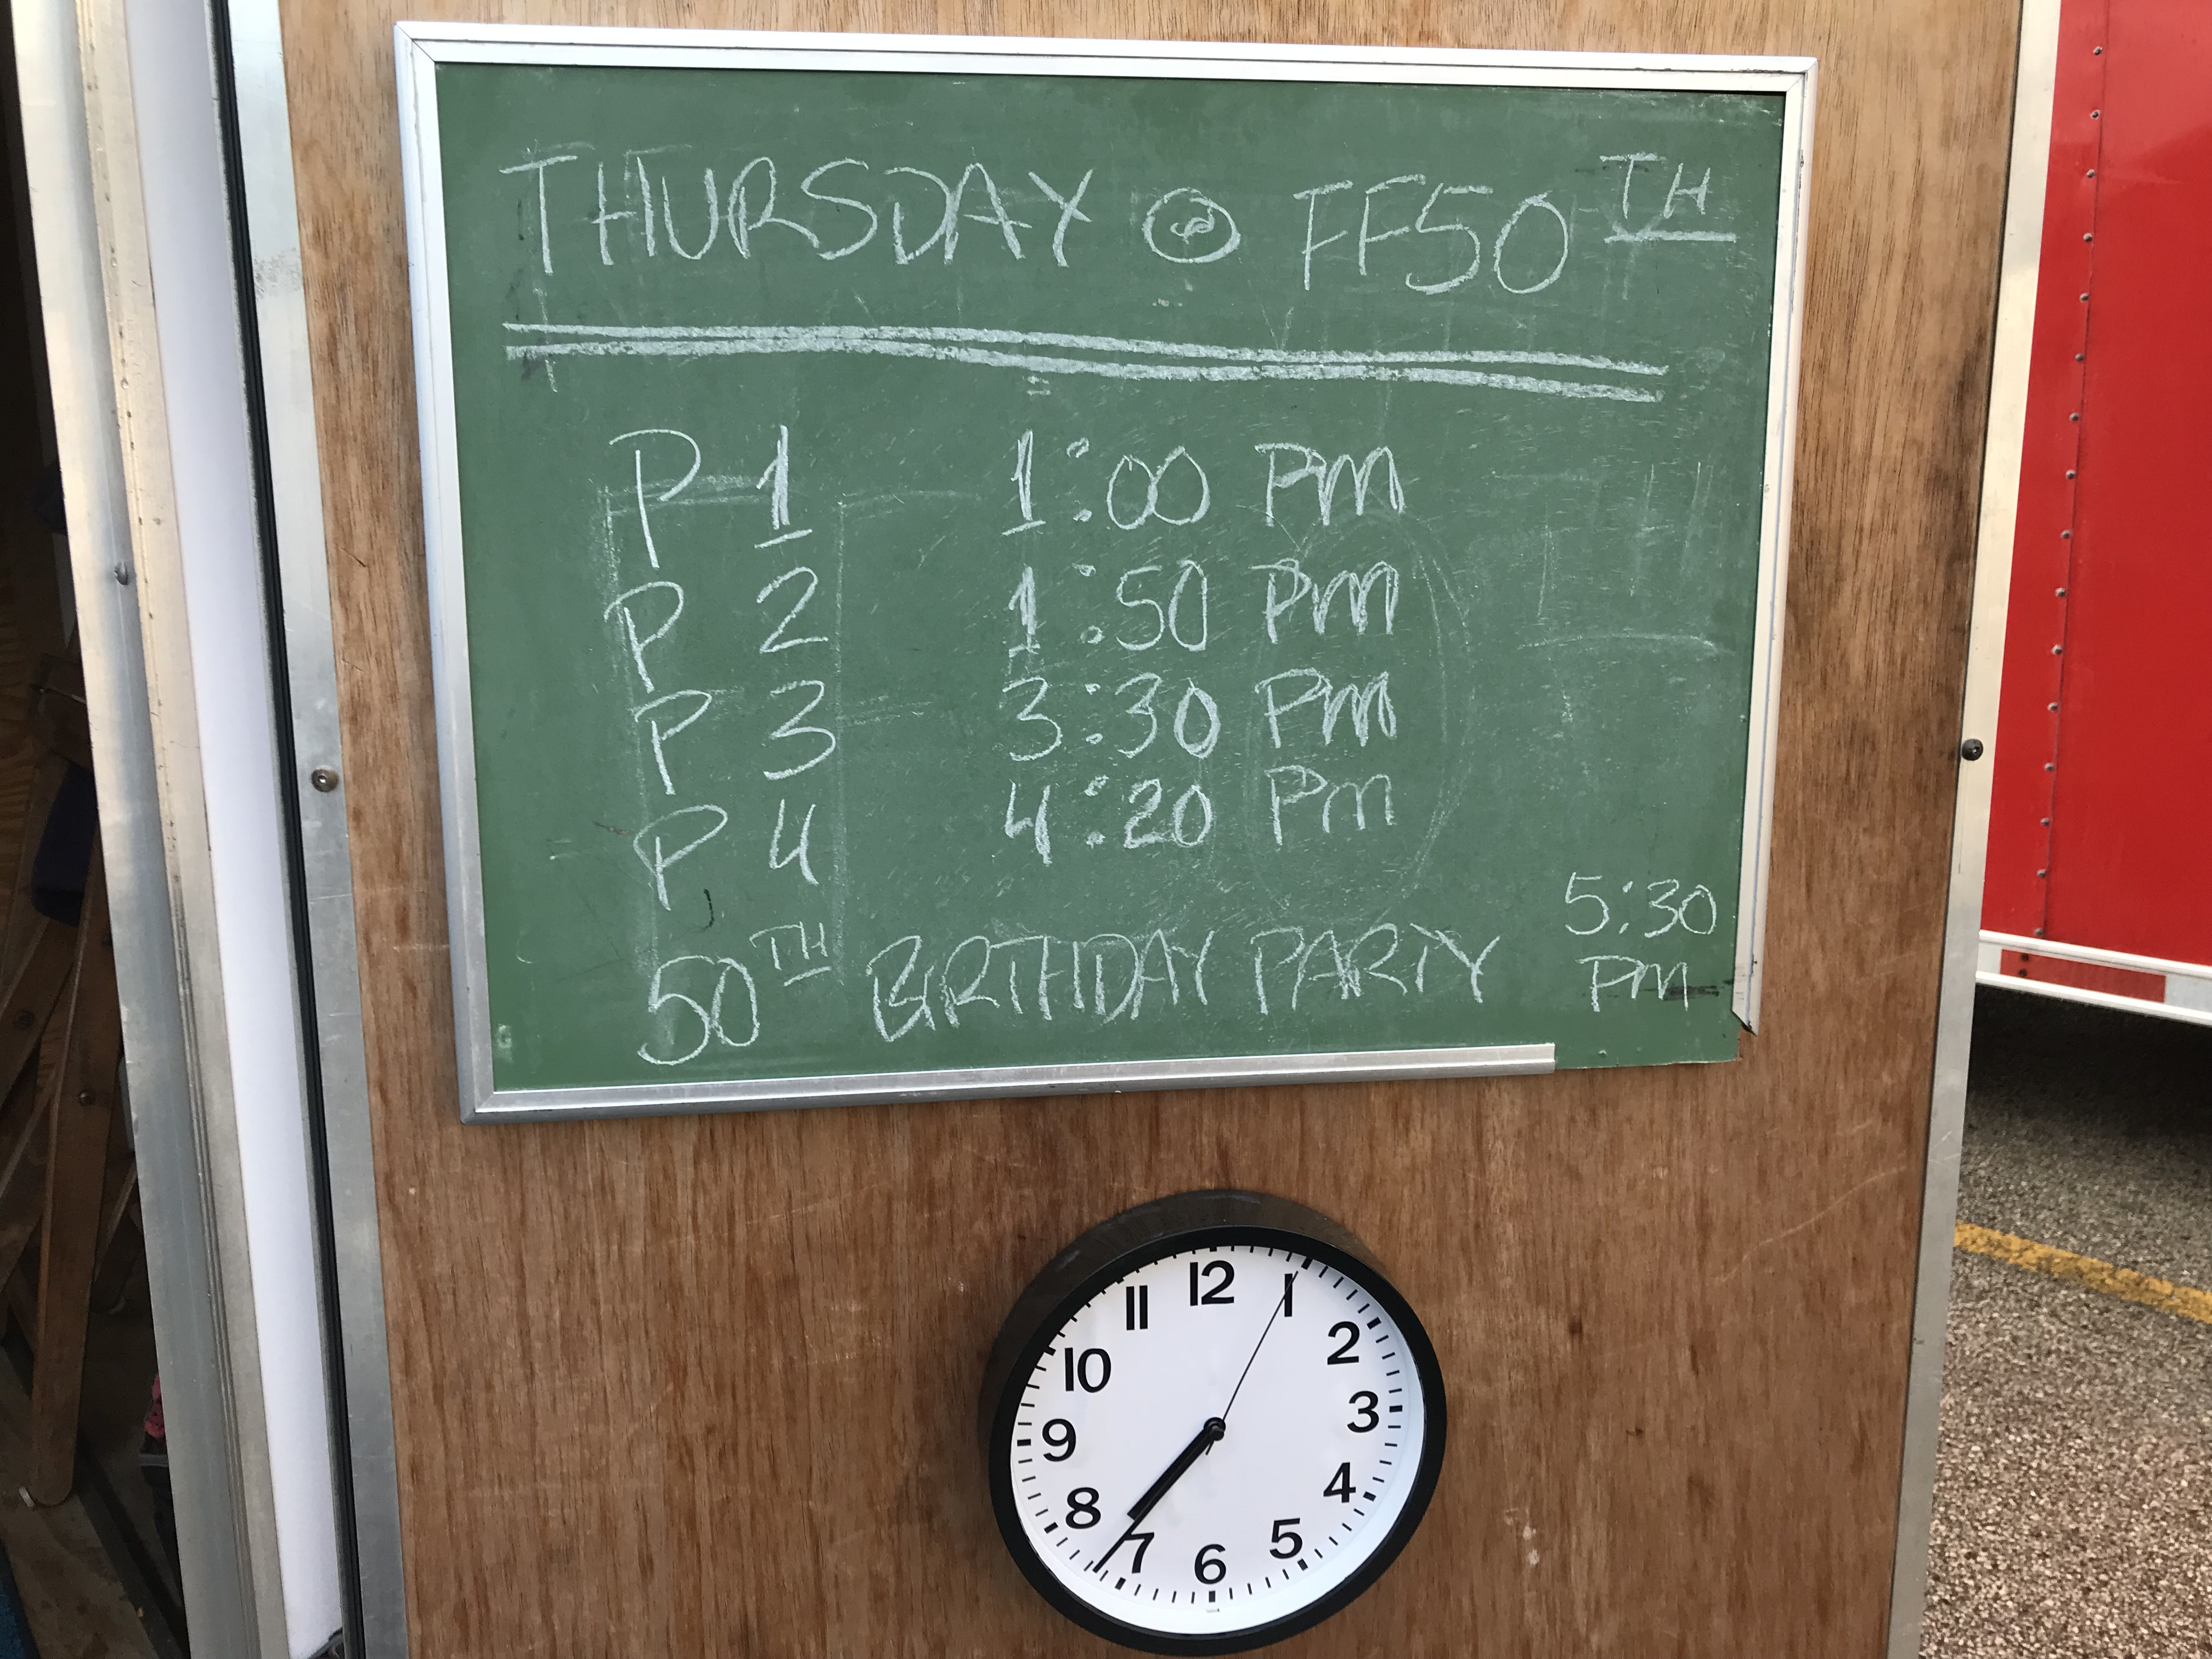 FF50th Thursday Schedule